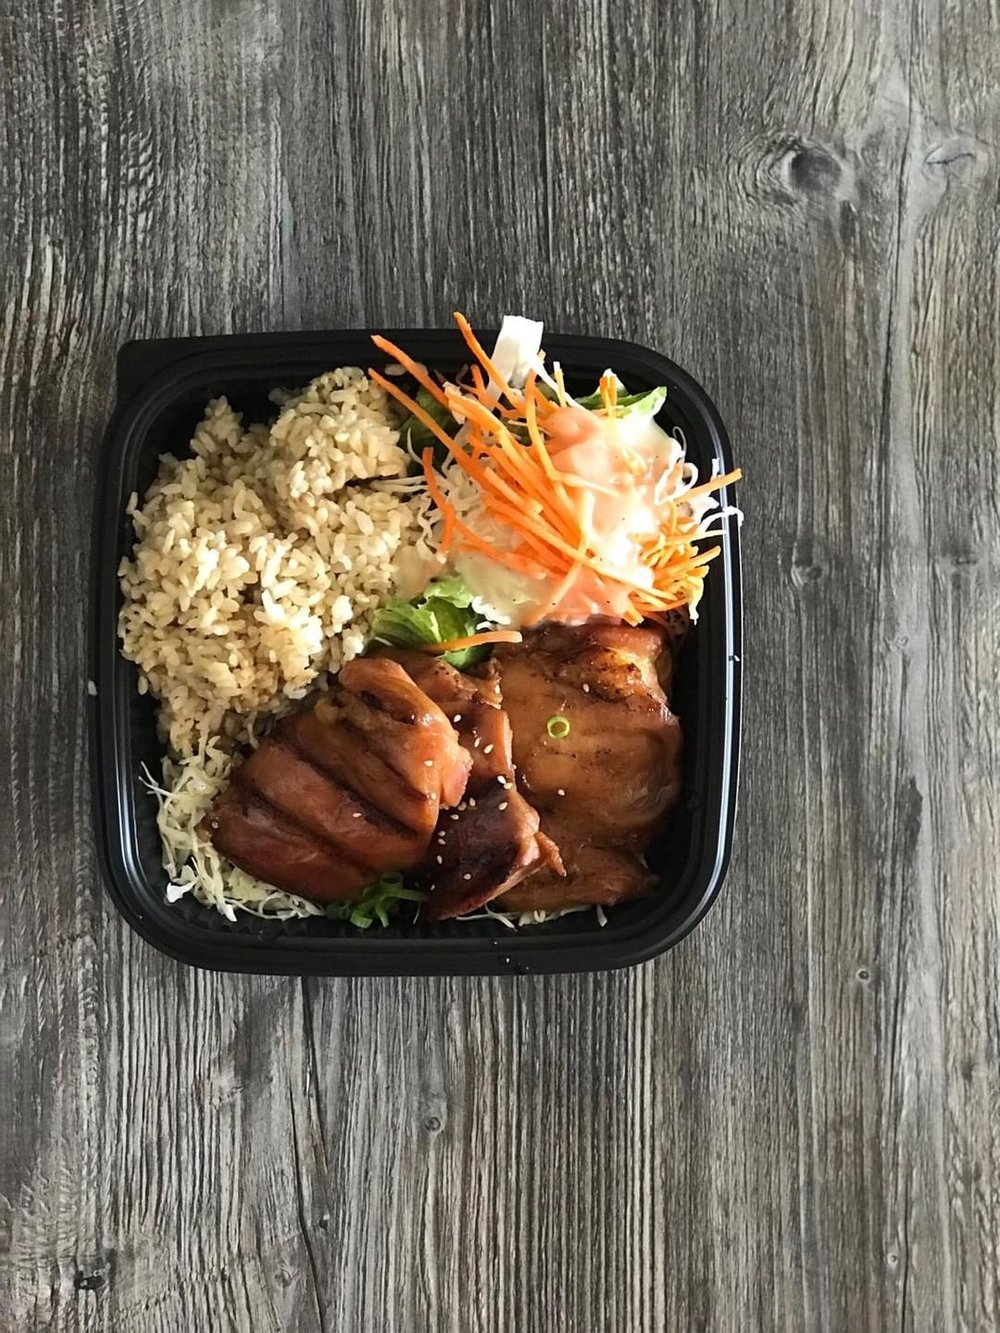 Teriyaki Plate Lunch at Da Kitchen by Kendra Murr   Discover the 10 best things to do in Maui with these insider tips from an ex-resident. #maui #travel #hawaii